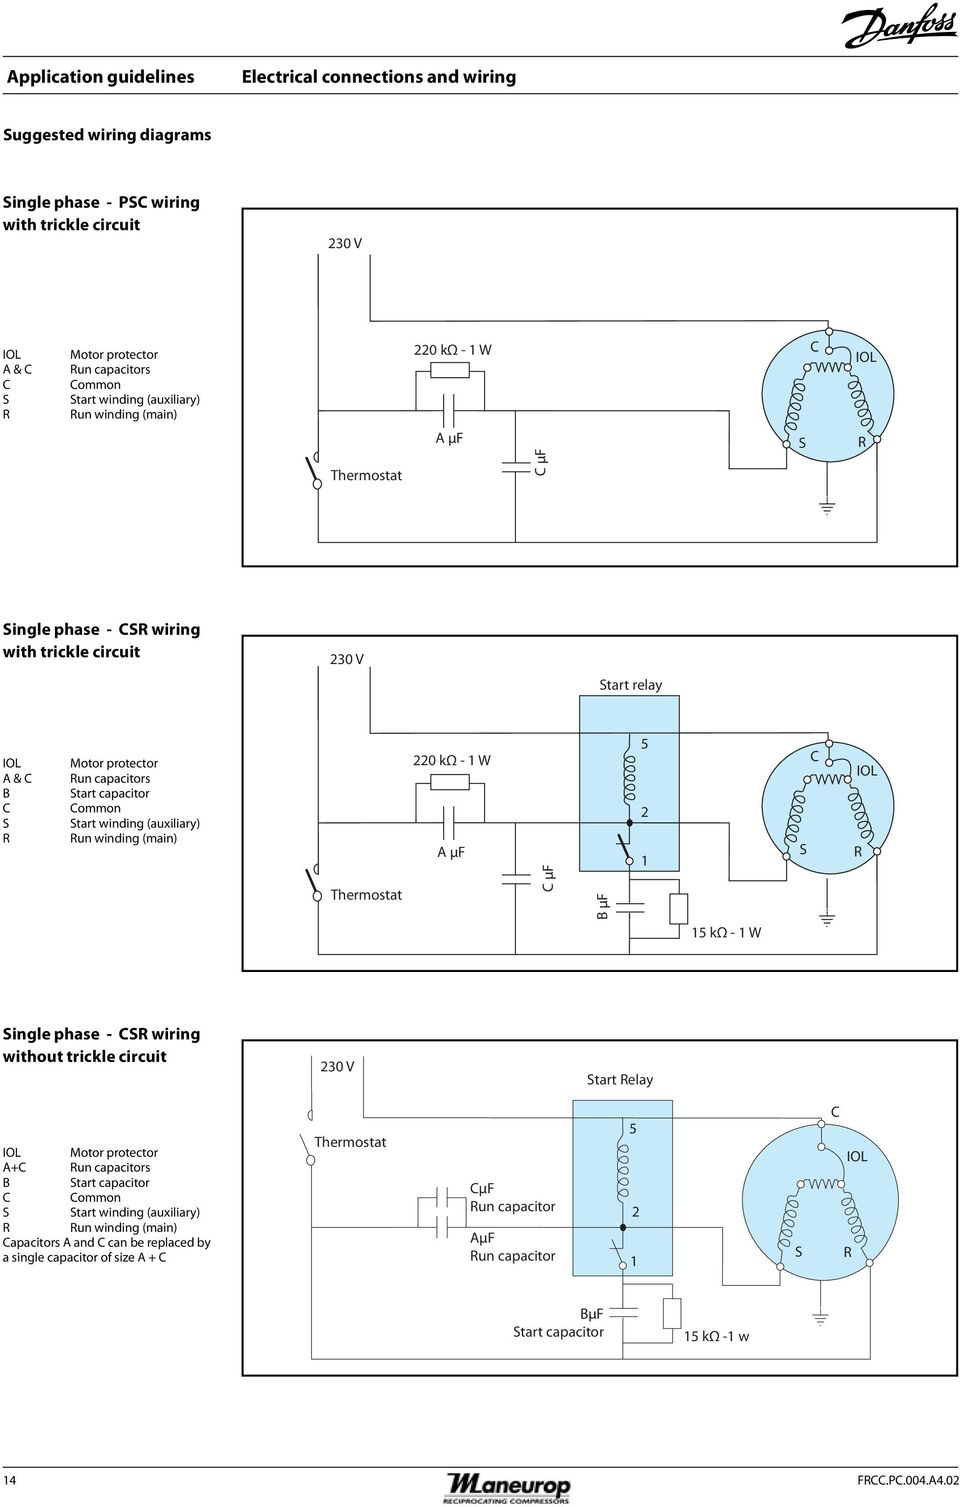 Maneurop Reciprocating Compressors Mt Mtz Hz R22 R407c R134a Wiring Diagram Air Pressor Hvac Superheat And Capacitors Start Capacitor Common Winding Auxiliary Run Main 220 K 15 Electrical Connections